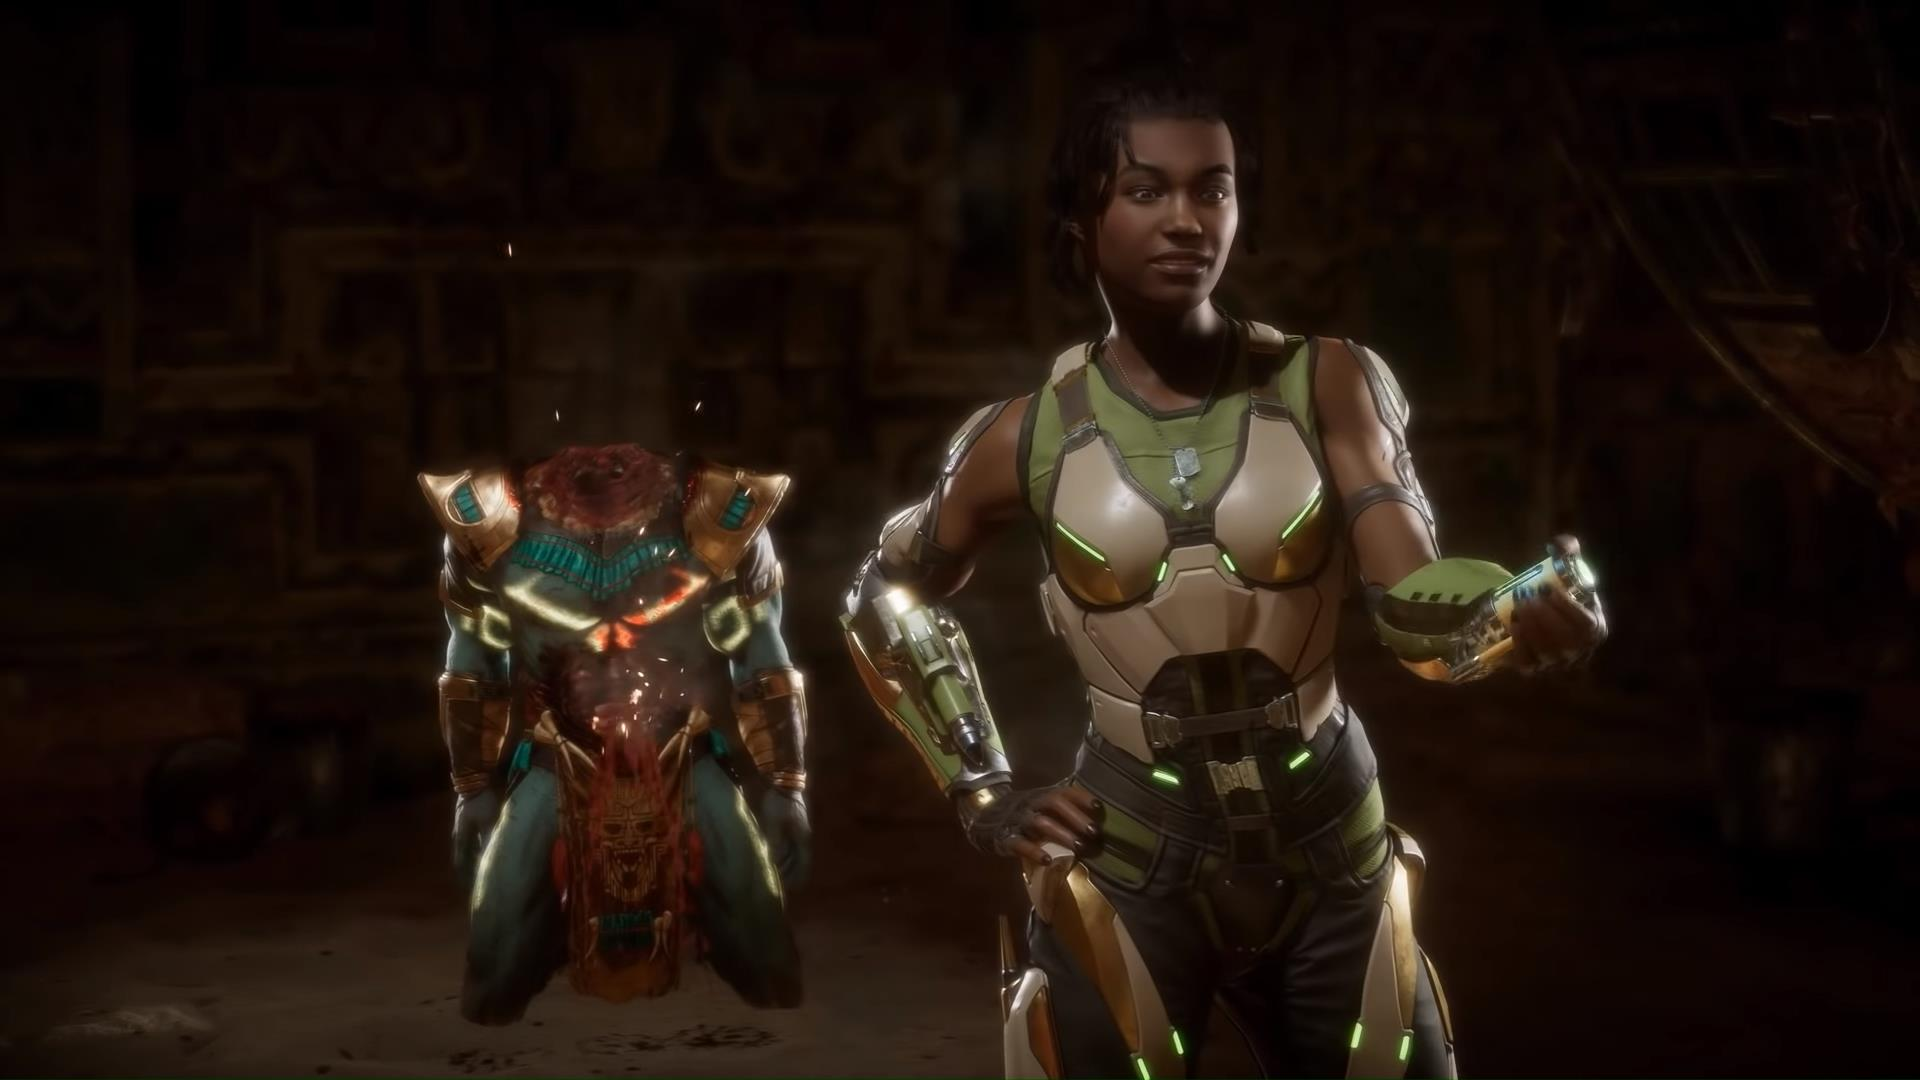 Mortal Kombat 11 DLC characters reportedly leaked - VG247